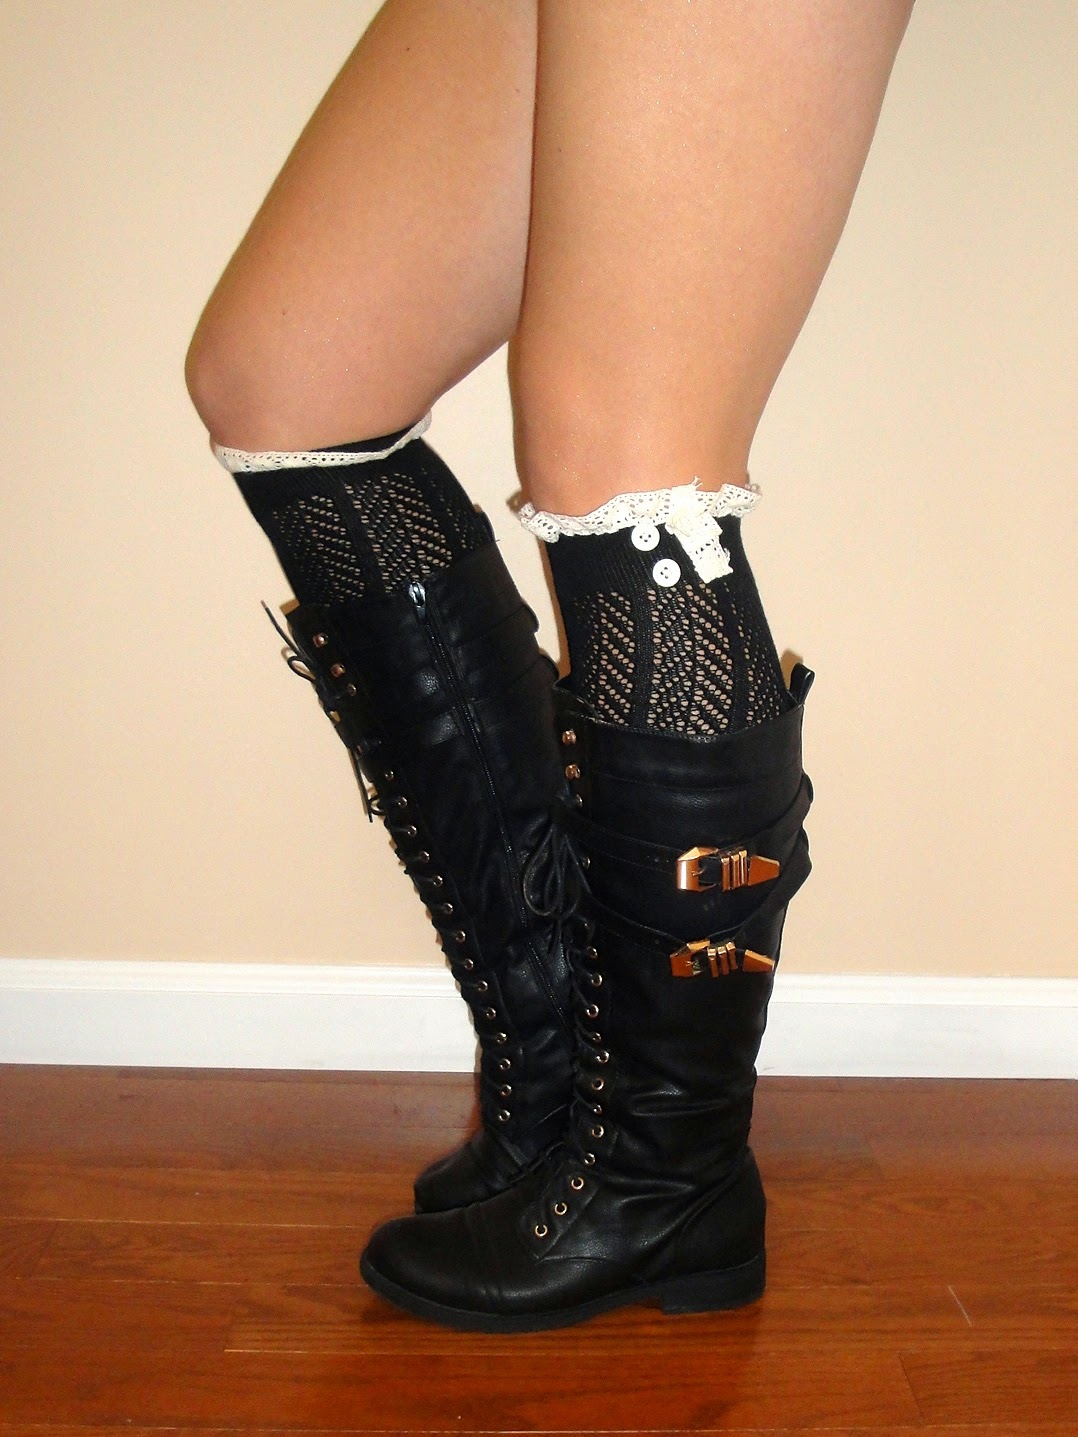 boot socks, lace boot socks, combat boots, black combat boots, lace up combat boots,